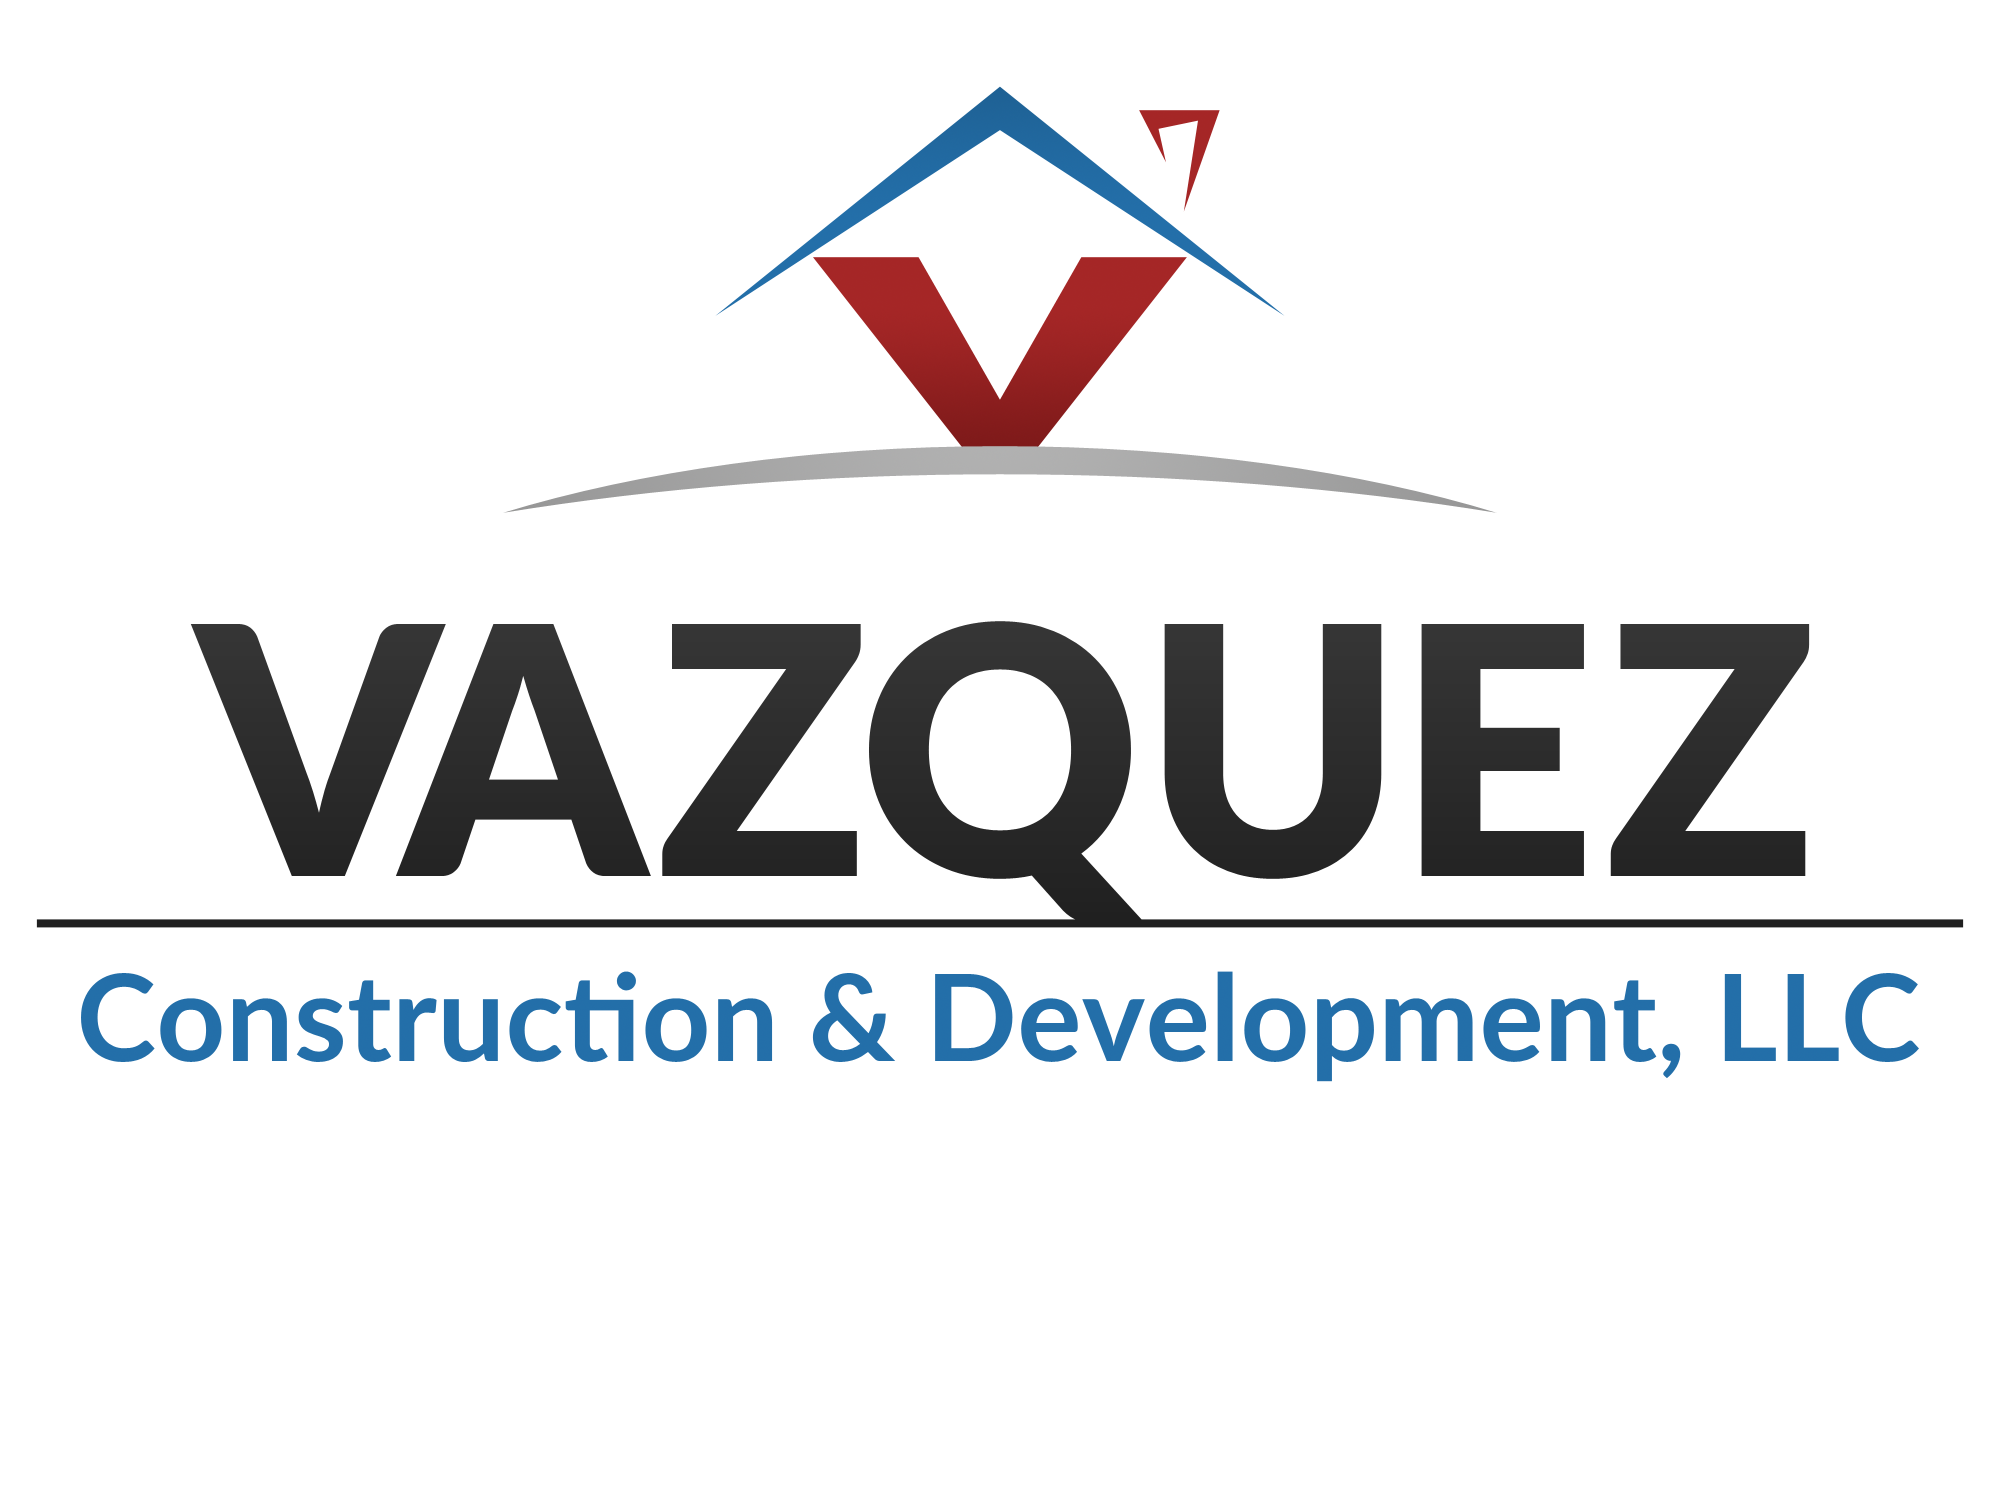 Vazquez Construction & Development, LLC